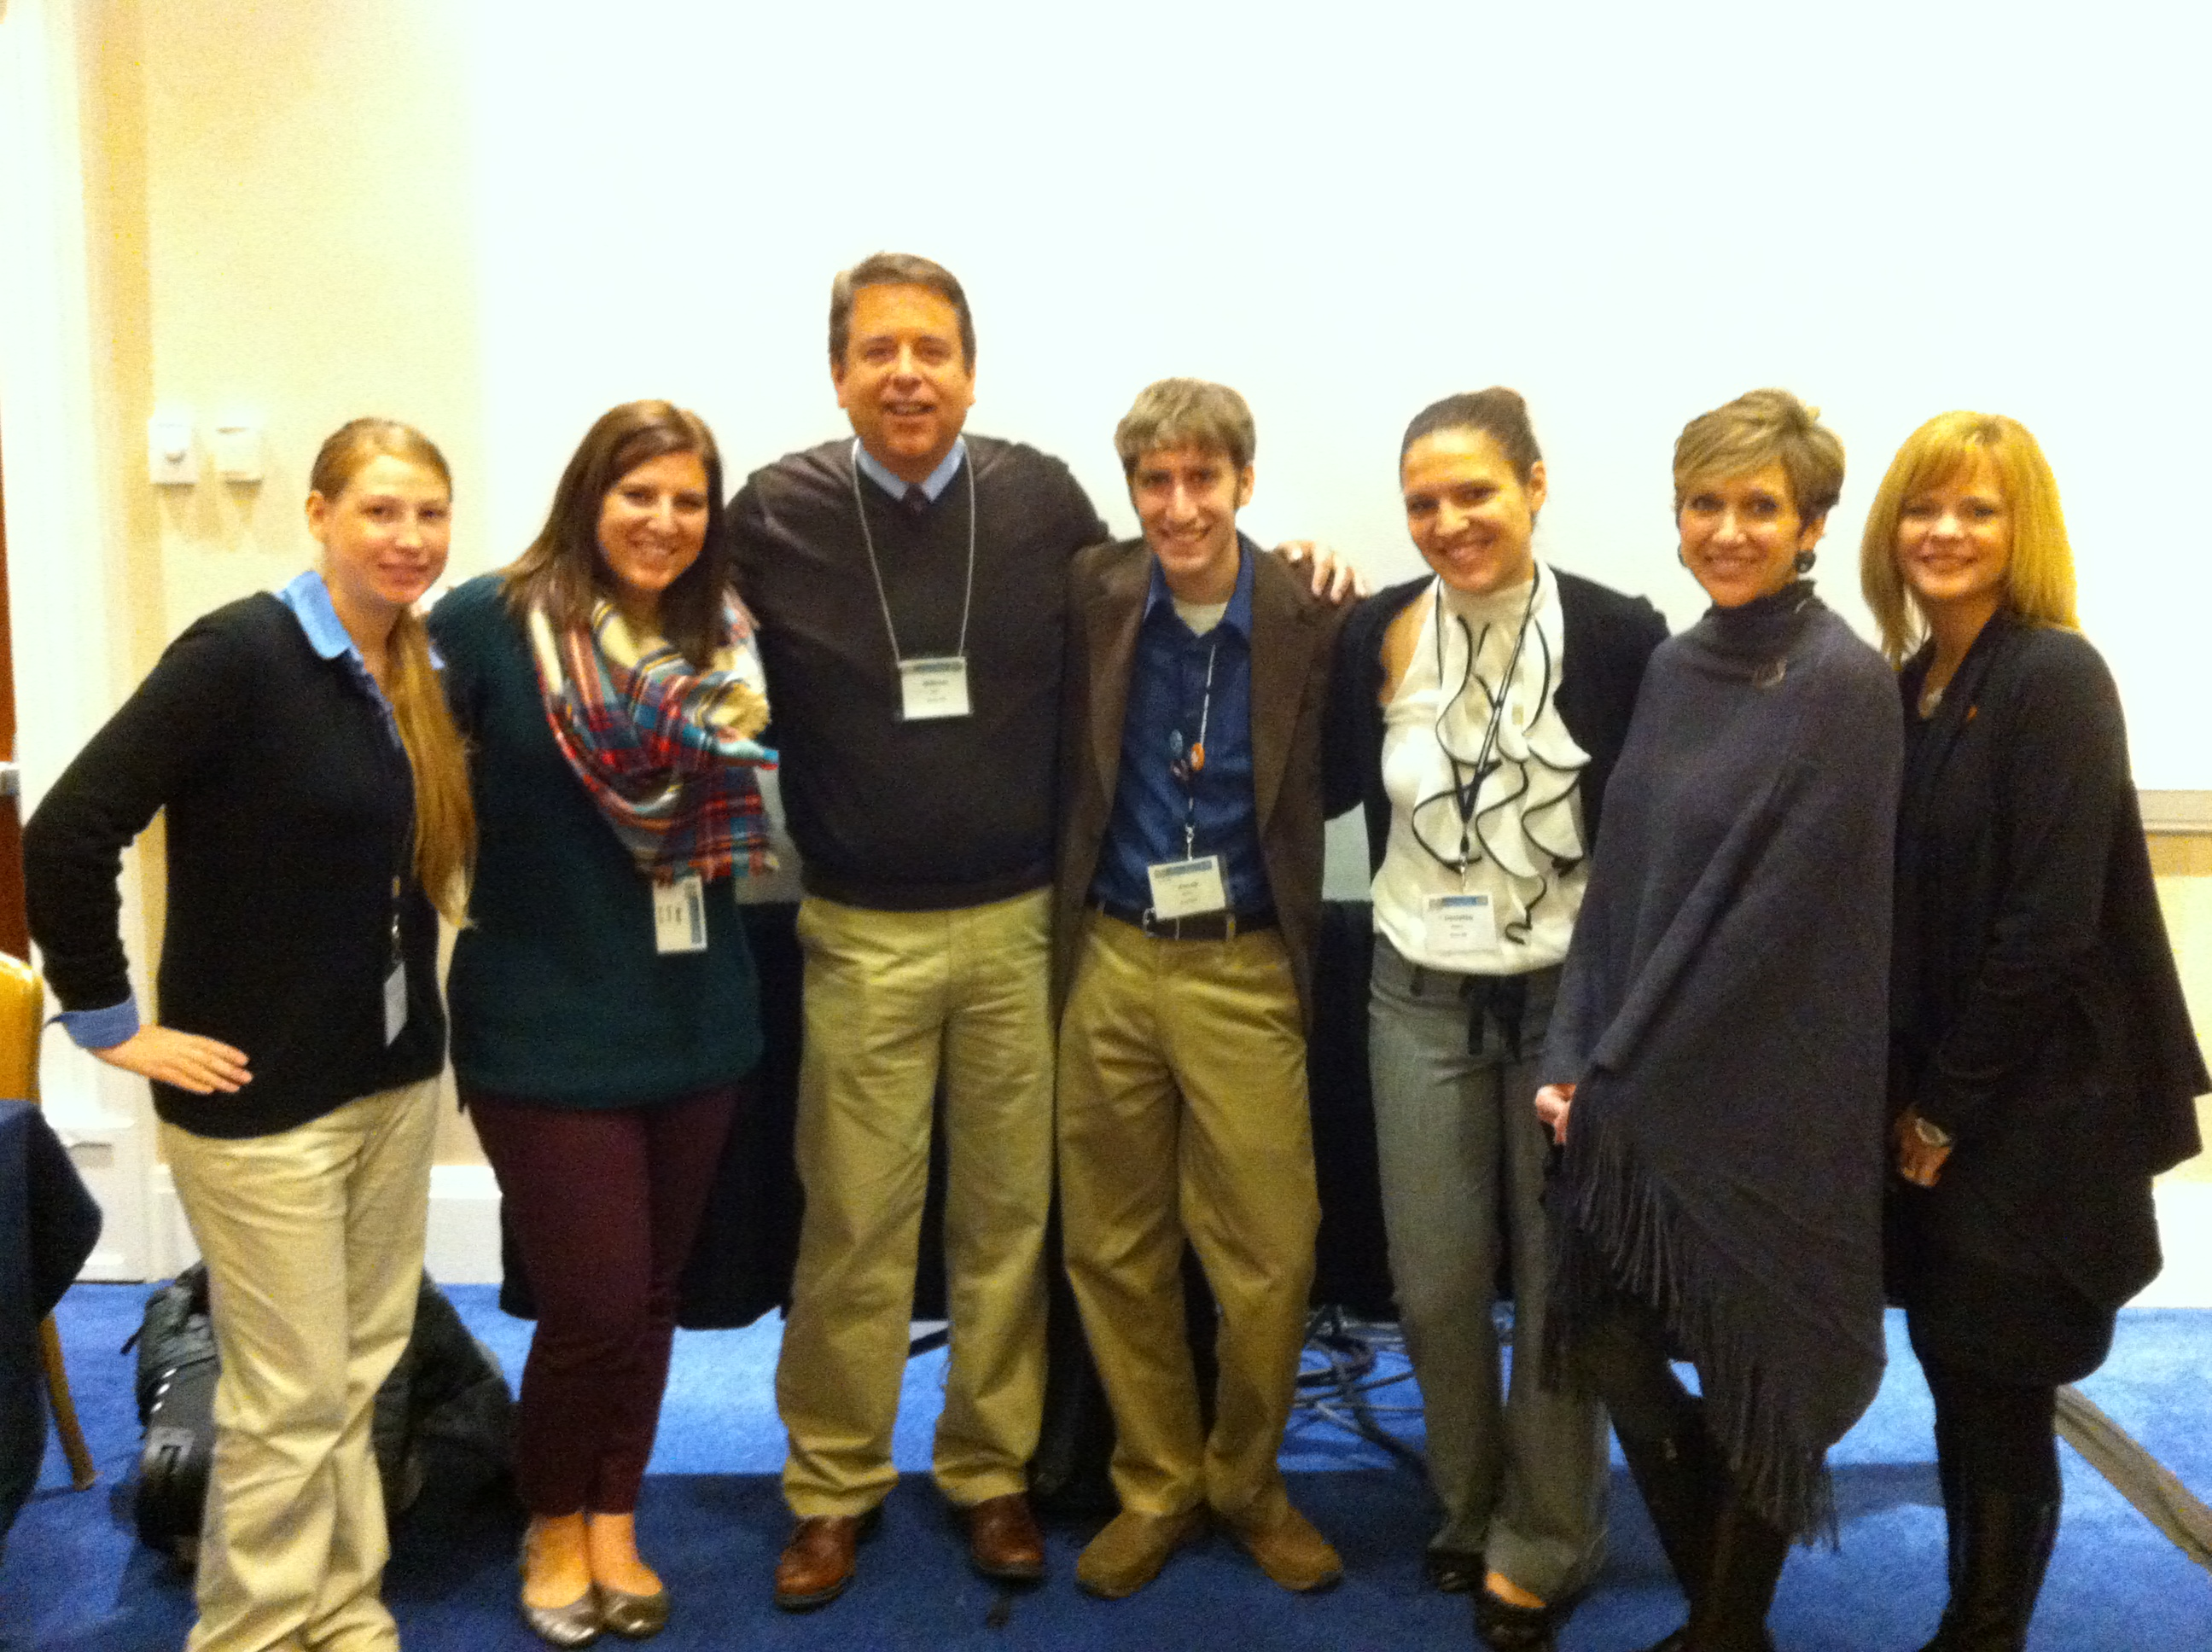 Dr. Kist, Dr. Testa et al. at National Council of Teachers of English conference